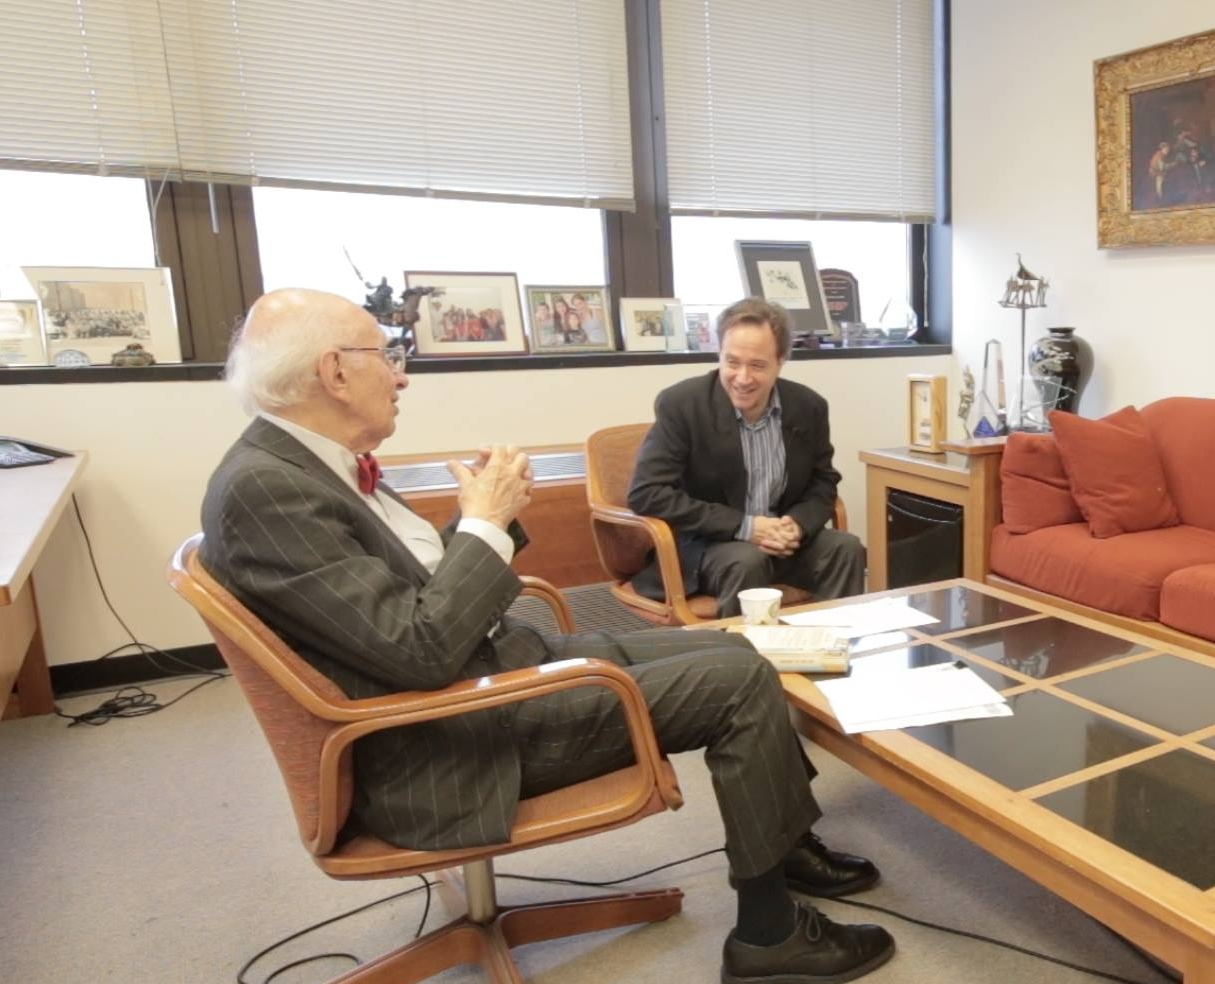 Dr. Eric Kandel in conversation with Ittai Shapira